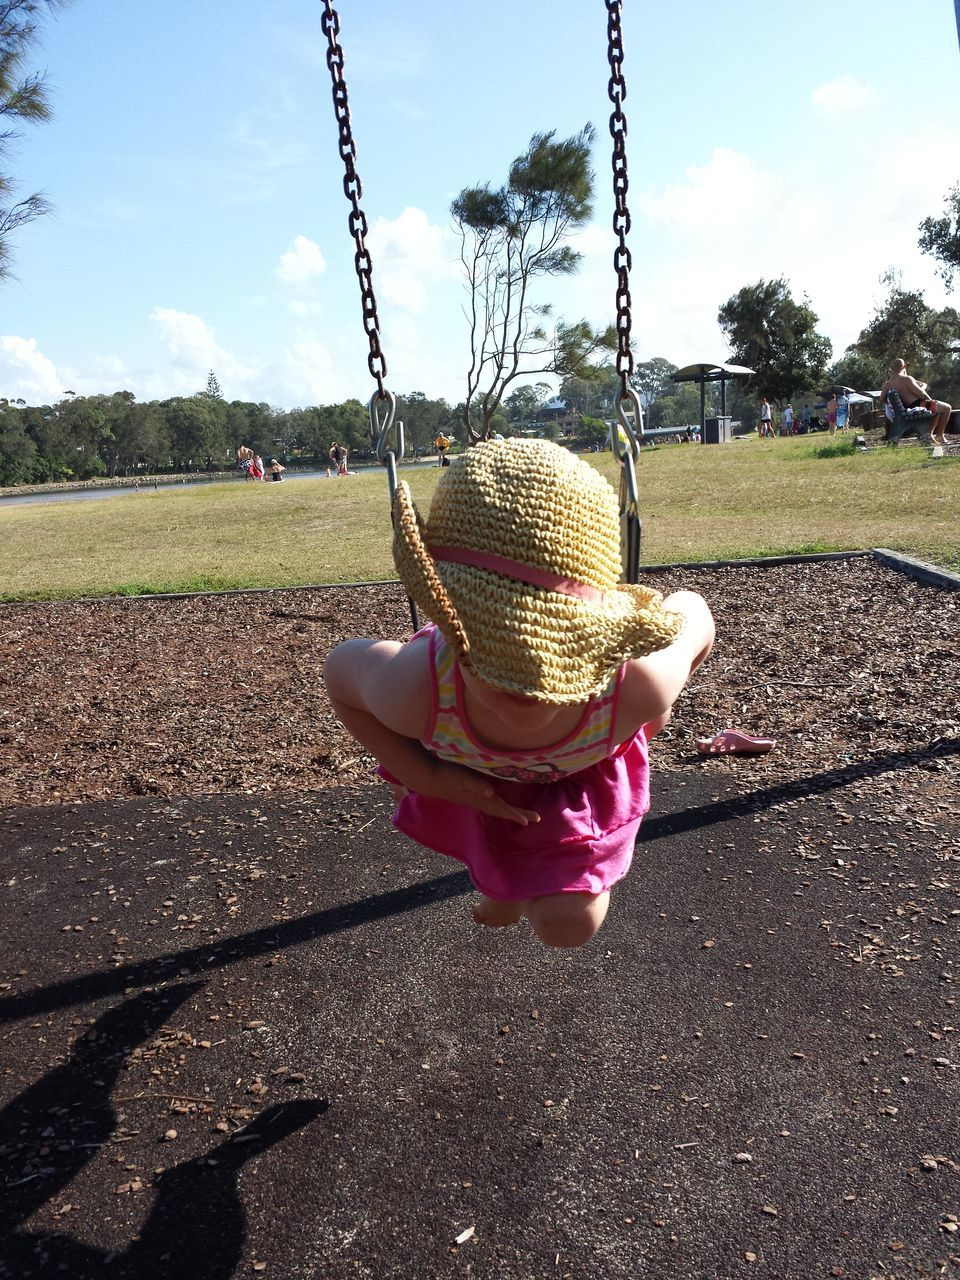 childhood, real people, sunlight, outdoors, day, one person, shadow, sky, growth, sun hat, tree, lifestyles, nature, people